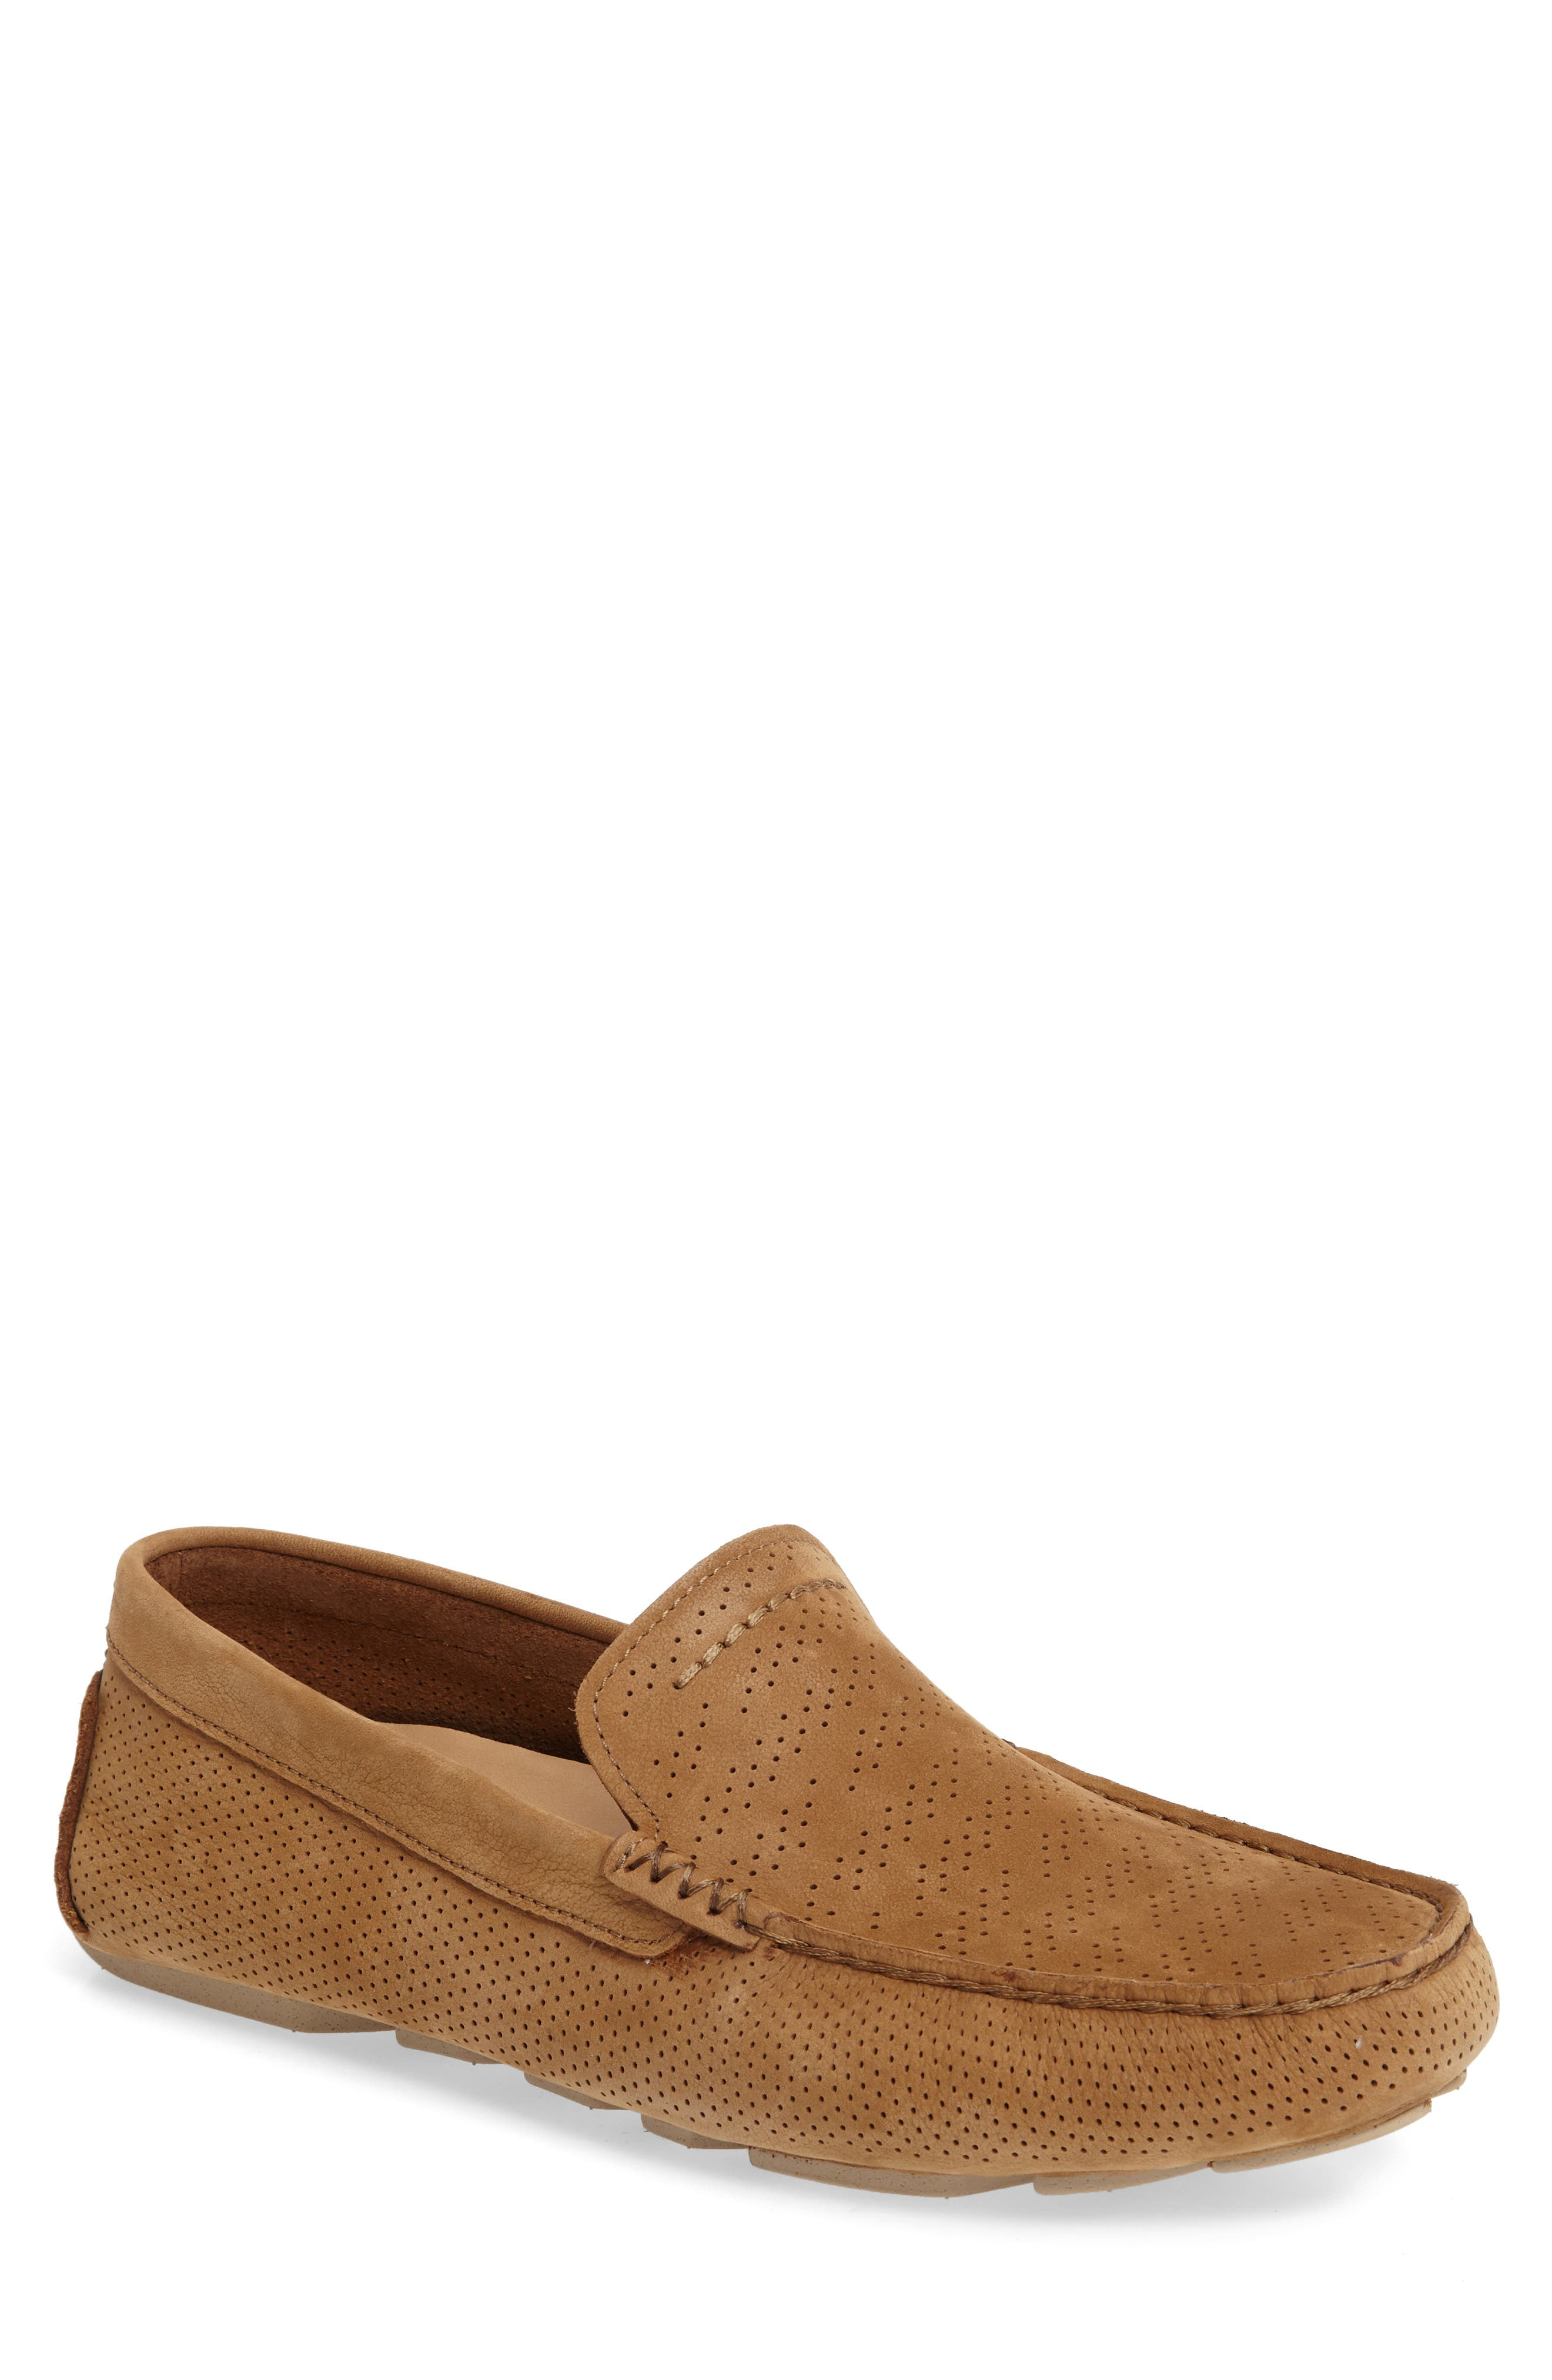 UGG<SUP>®</SUP> Henrick Twinsole<sup>®</sup> Driving Shoe, Main, color, TAMARIND